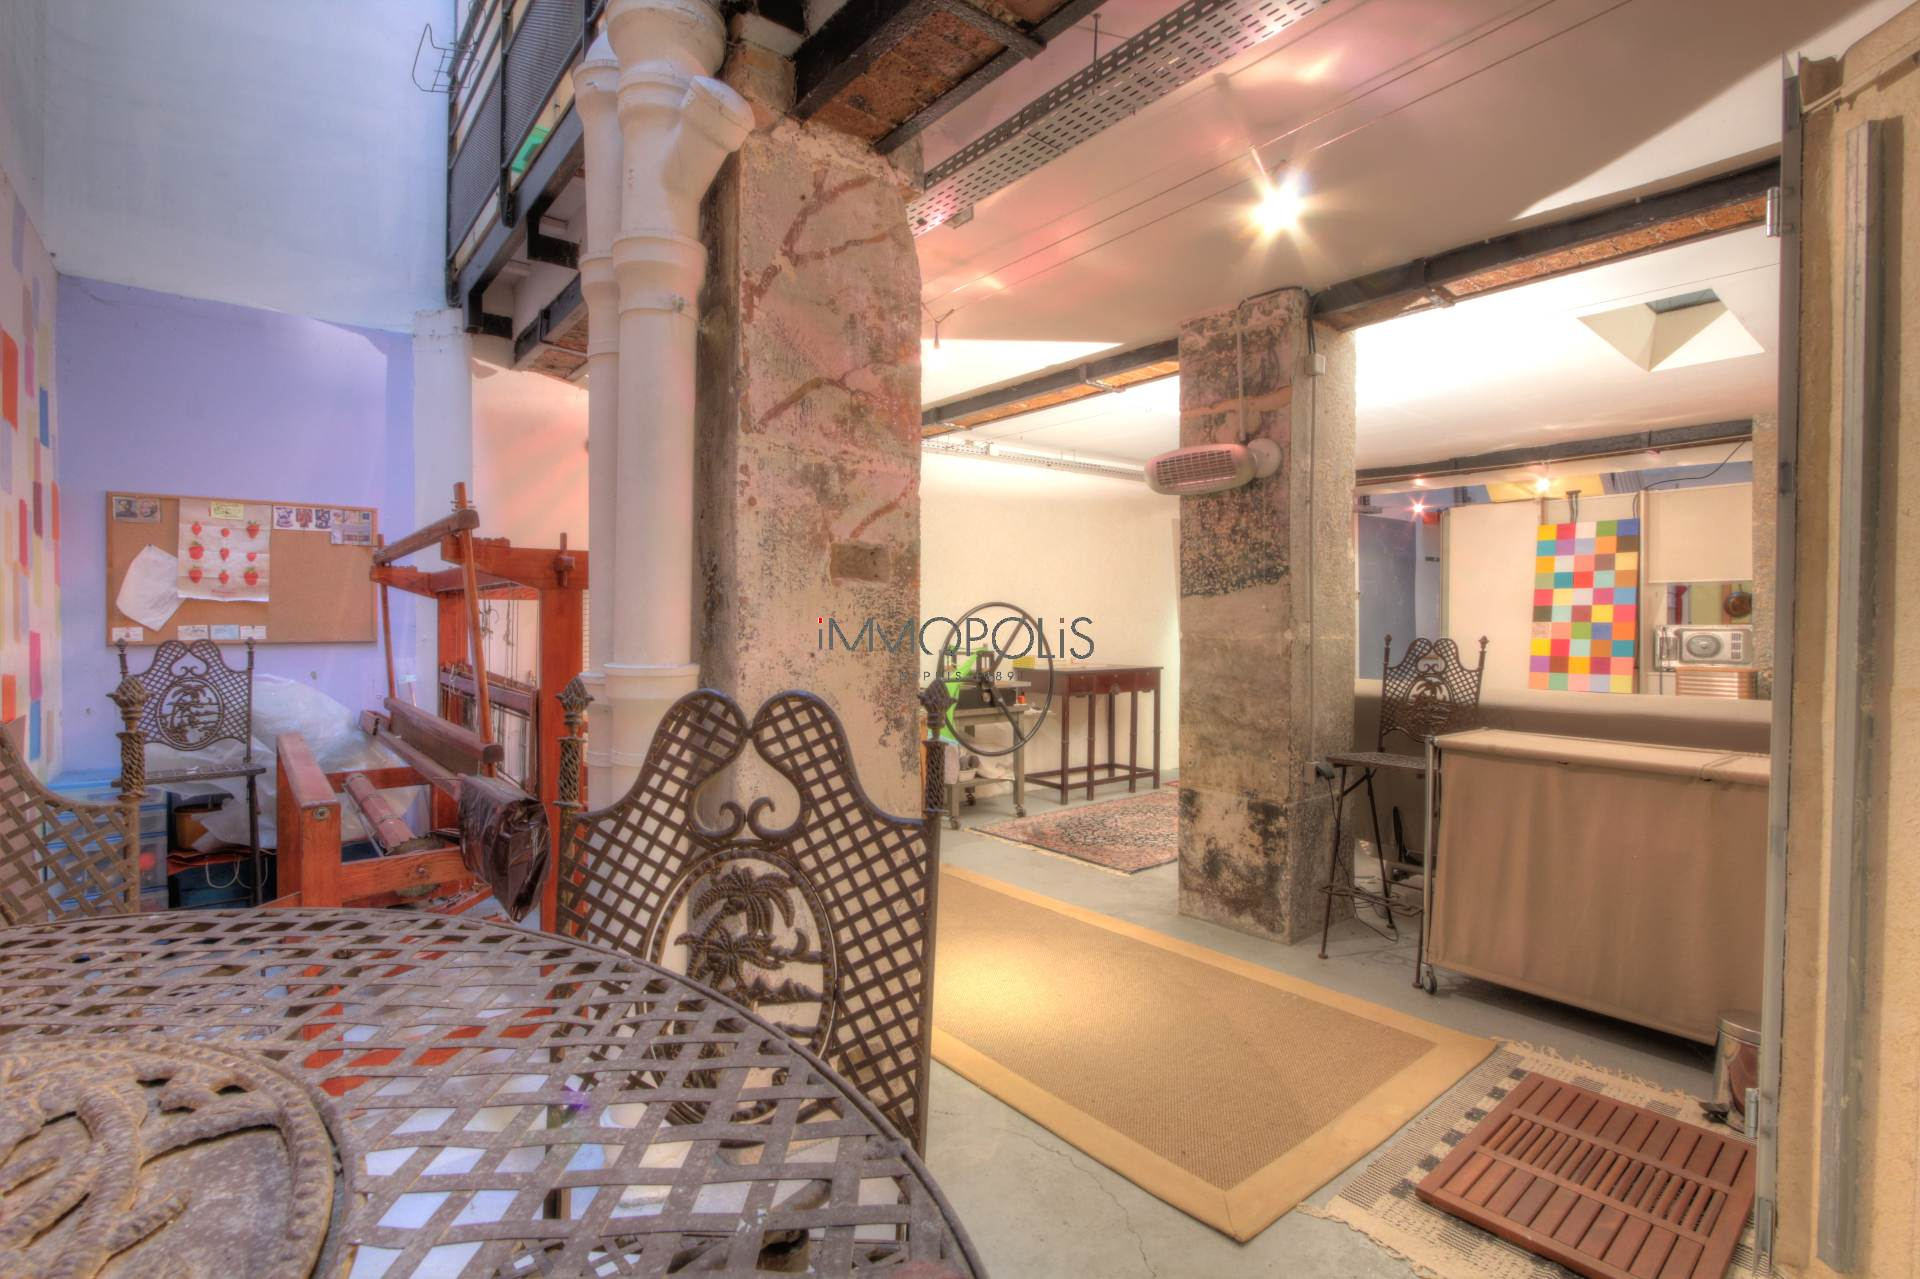 LOFT / ARTIST WORKSHOP totally atypical, in OPEN-SPACE on three levels with TWO CANOPIES overlooking calm courtyard! 6